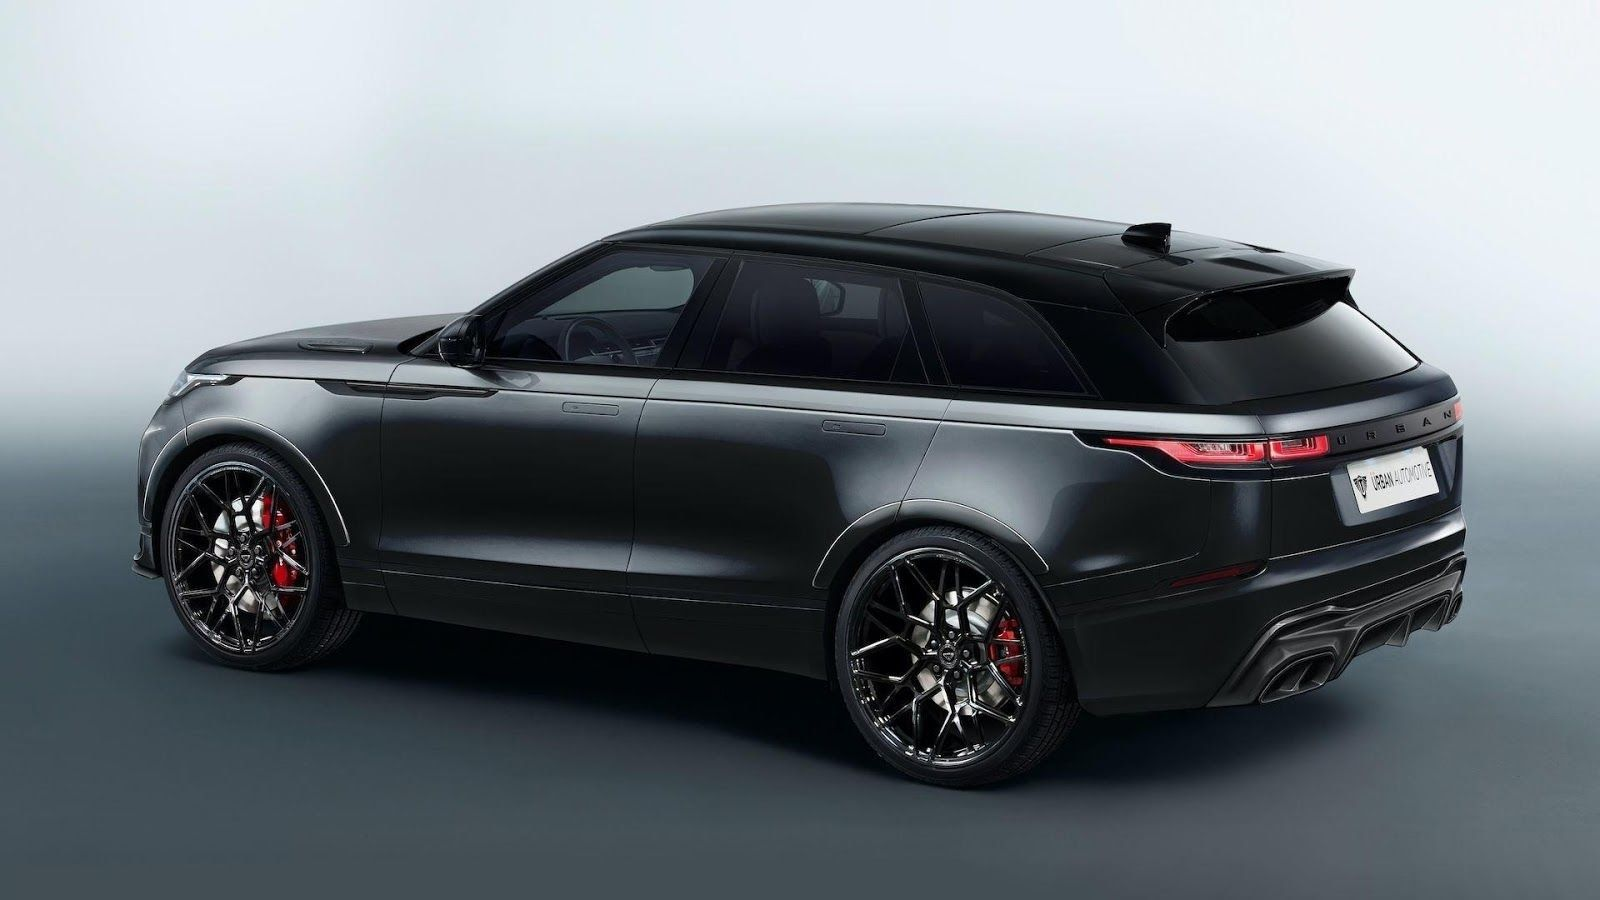 The 2020 Land Rover Velar Svr Price And Release Date Range Rover Land Rover Range Rover Sport